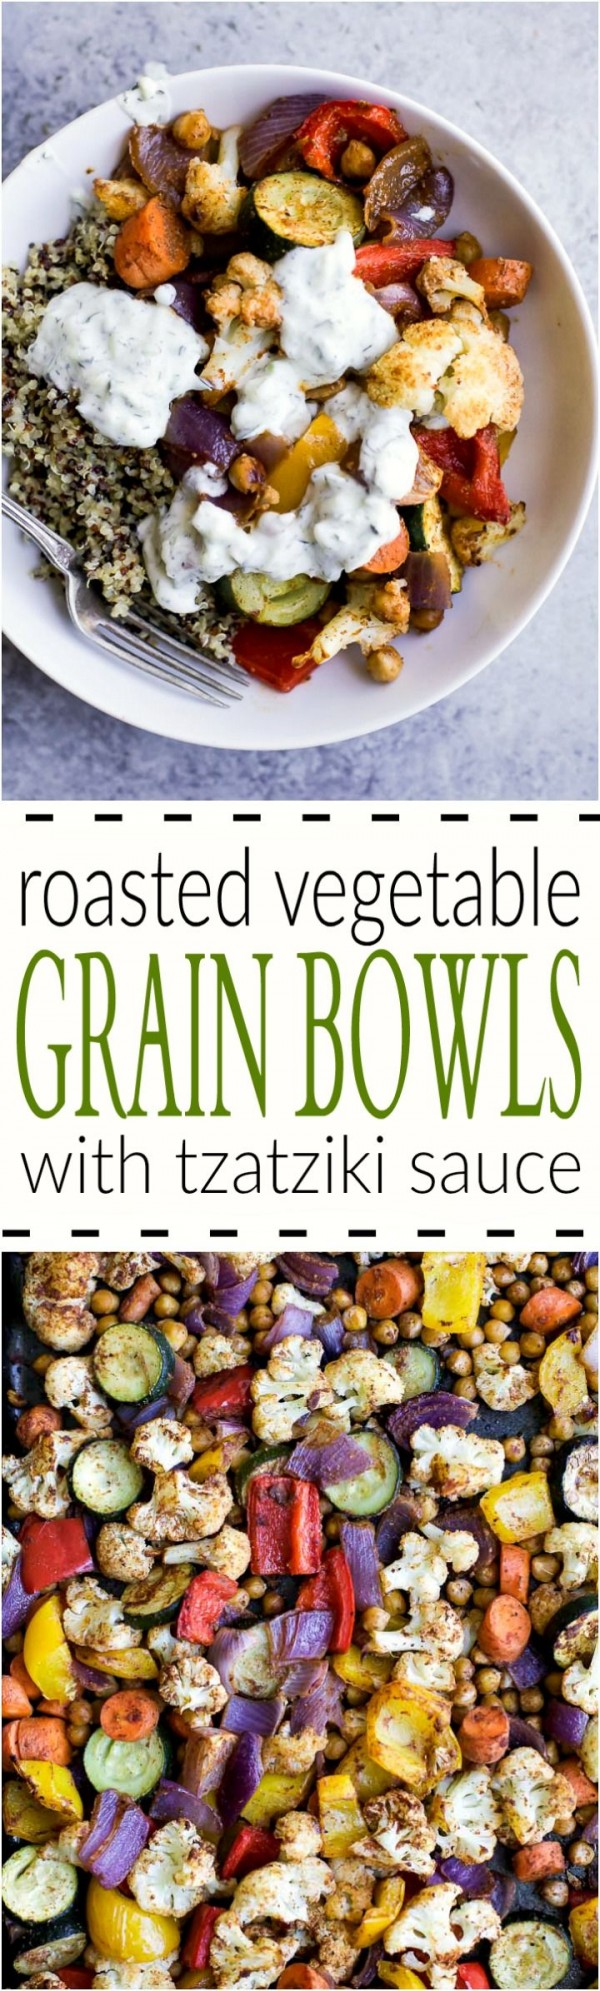 Get the recipe Roasted Vegetables Grain Bowls @recipes_to_go